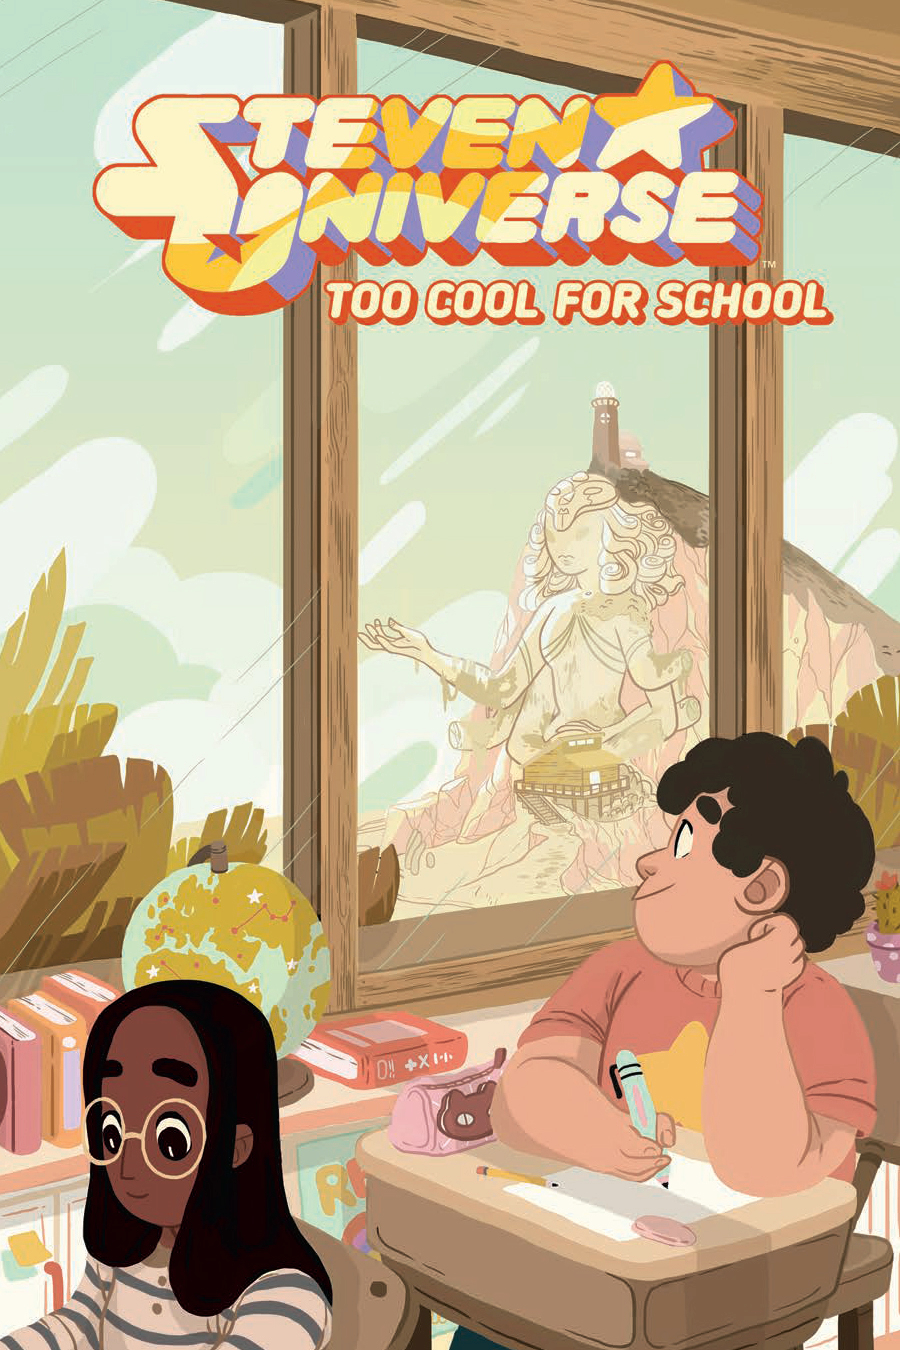 STEVEN UNIVERSE ORIGINAL GN VOL 01 TOO COOL FOR SCHOOL